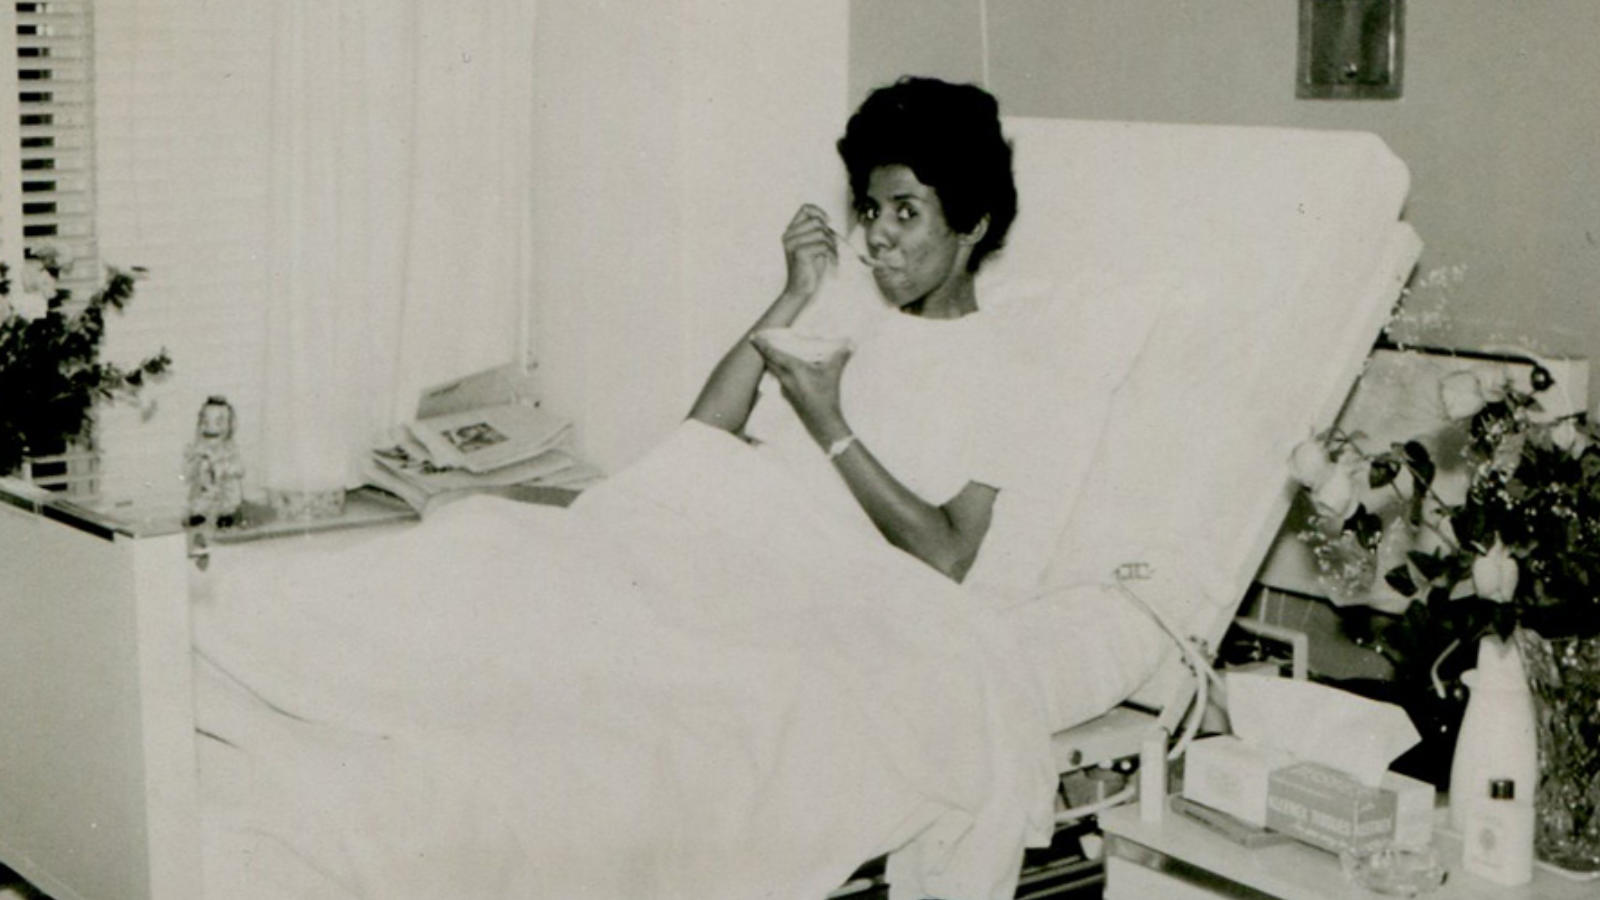 Lorraine Hansberry in hospital eating ice-cream Image: Lorraine Hansberry Literary Trust